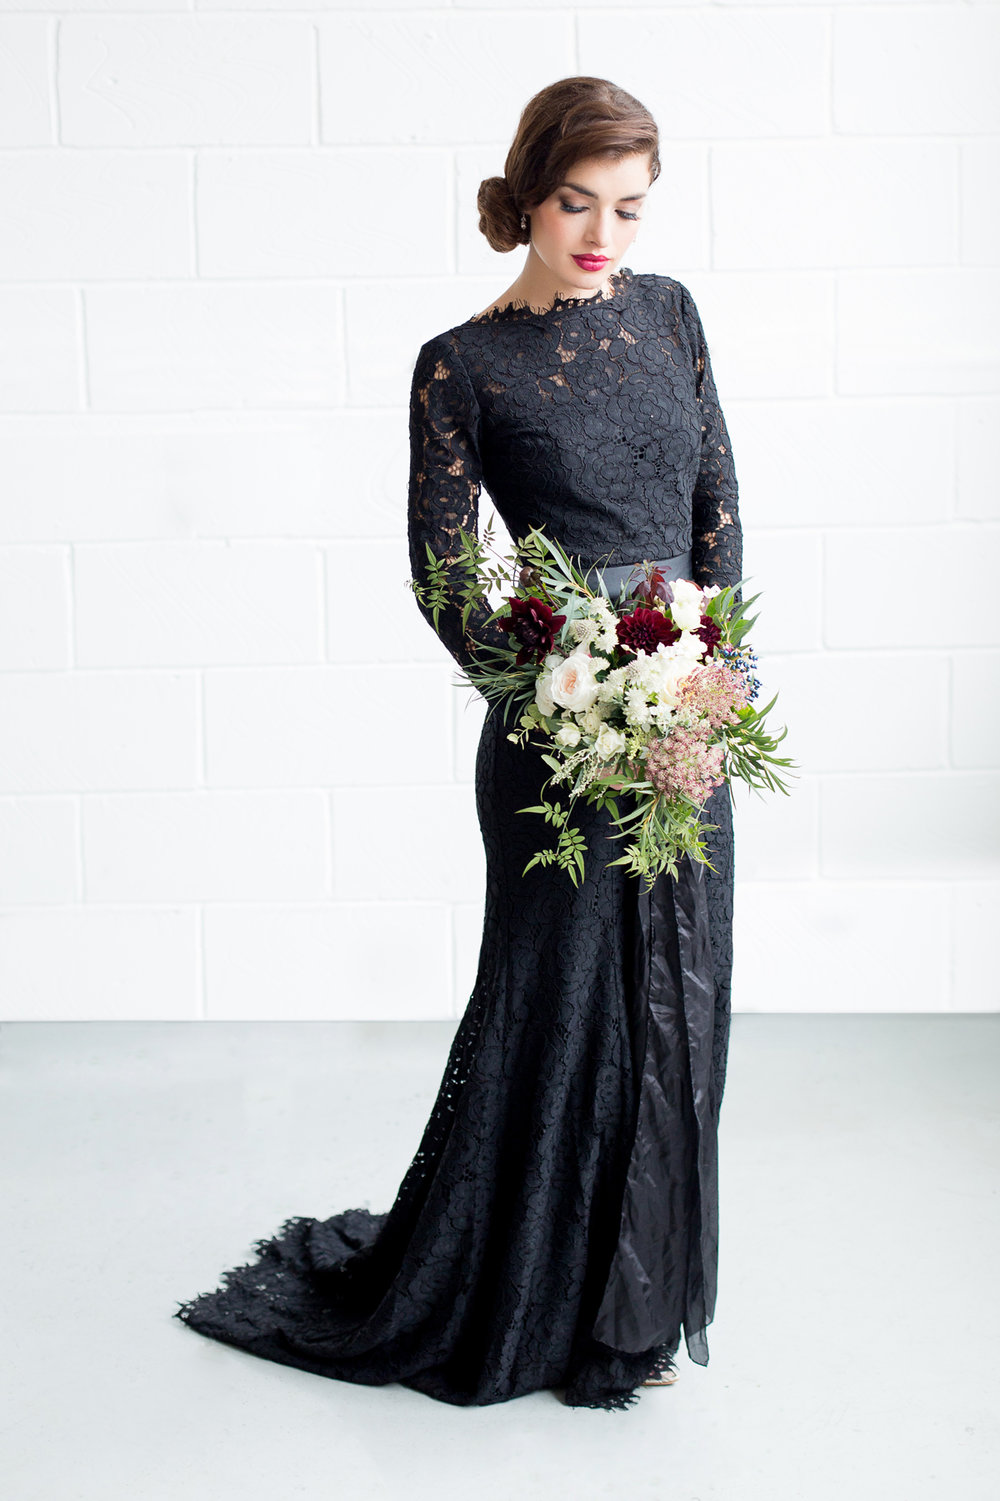 Black Lace Bridesmaid Dress - Industrial Warehouse Wedding -- The Overwhelmed Bride - Wedding Blog